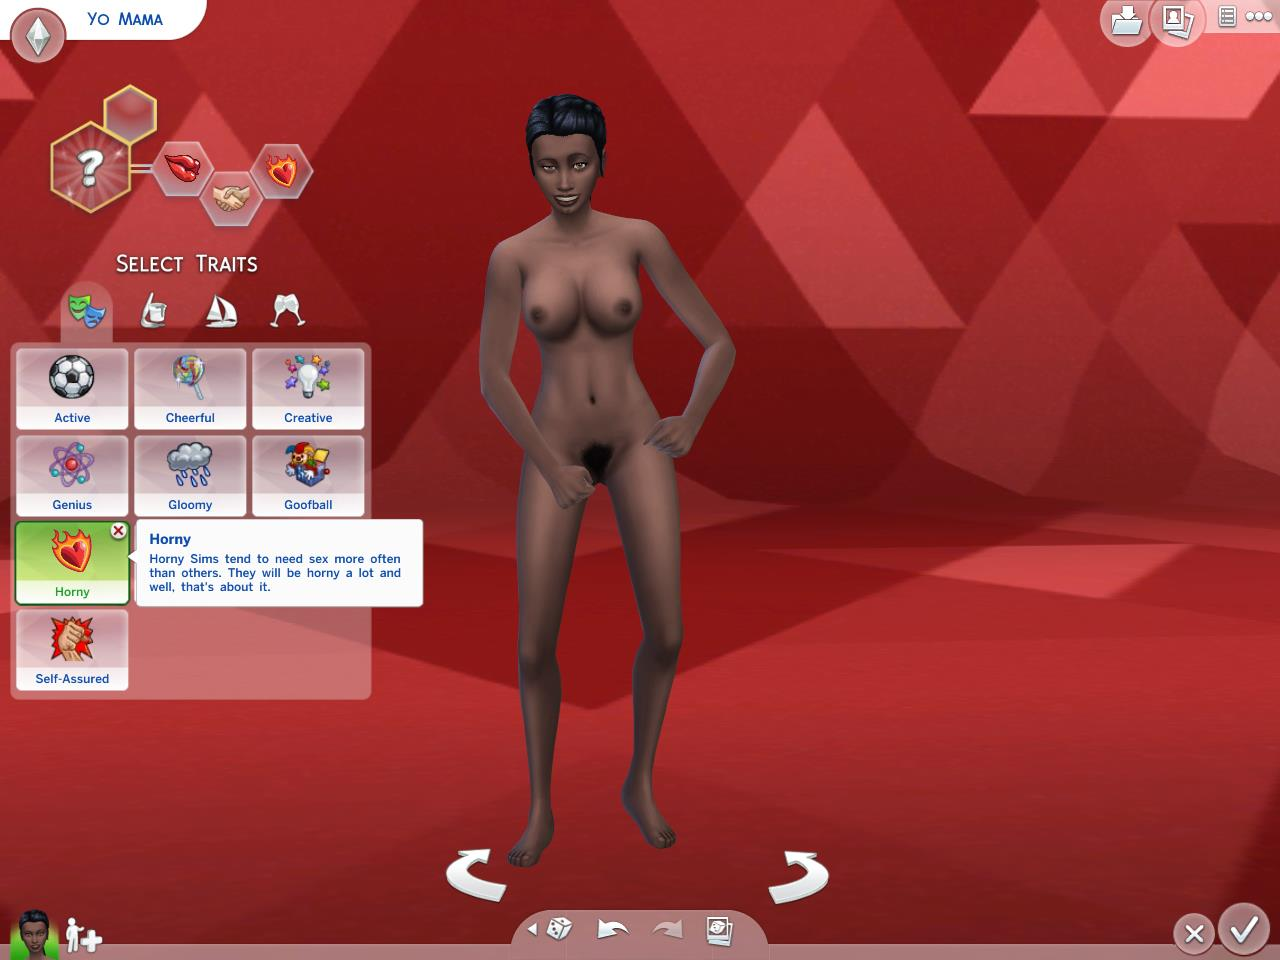 Sims nude patch mac hentai streaming